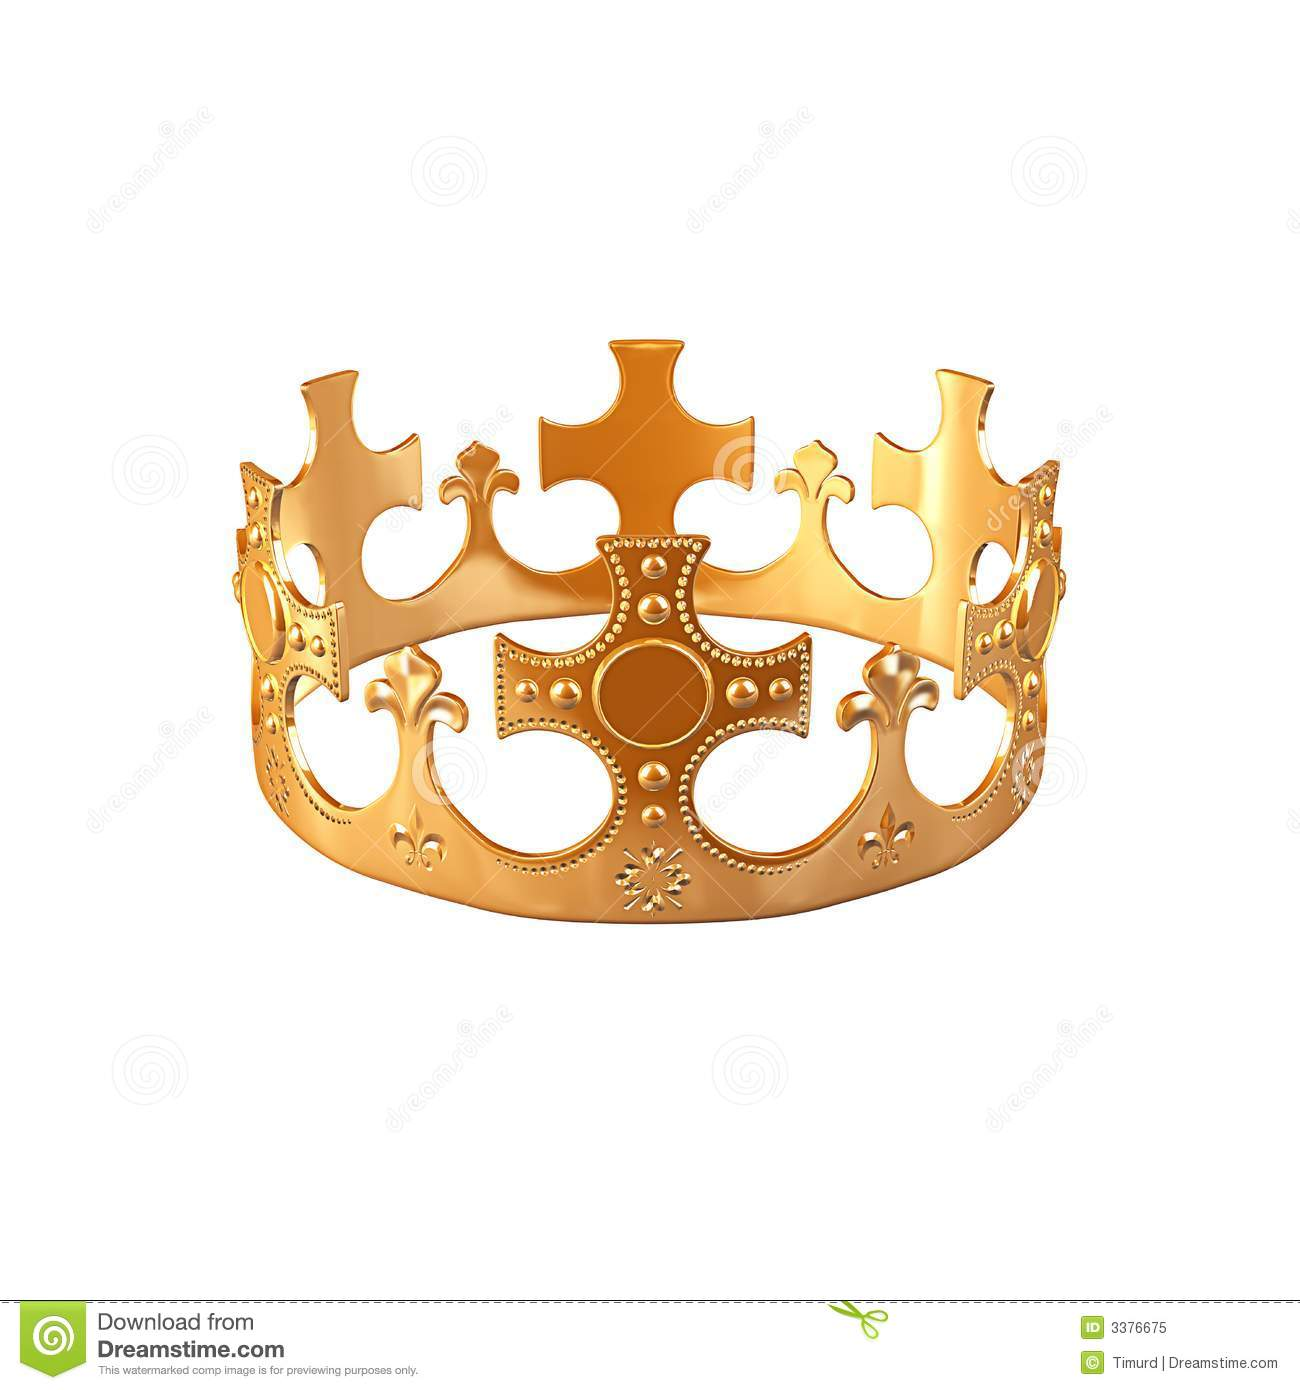 Download Gold crown stock illustration. Illustration of insignia - 3376675